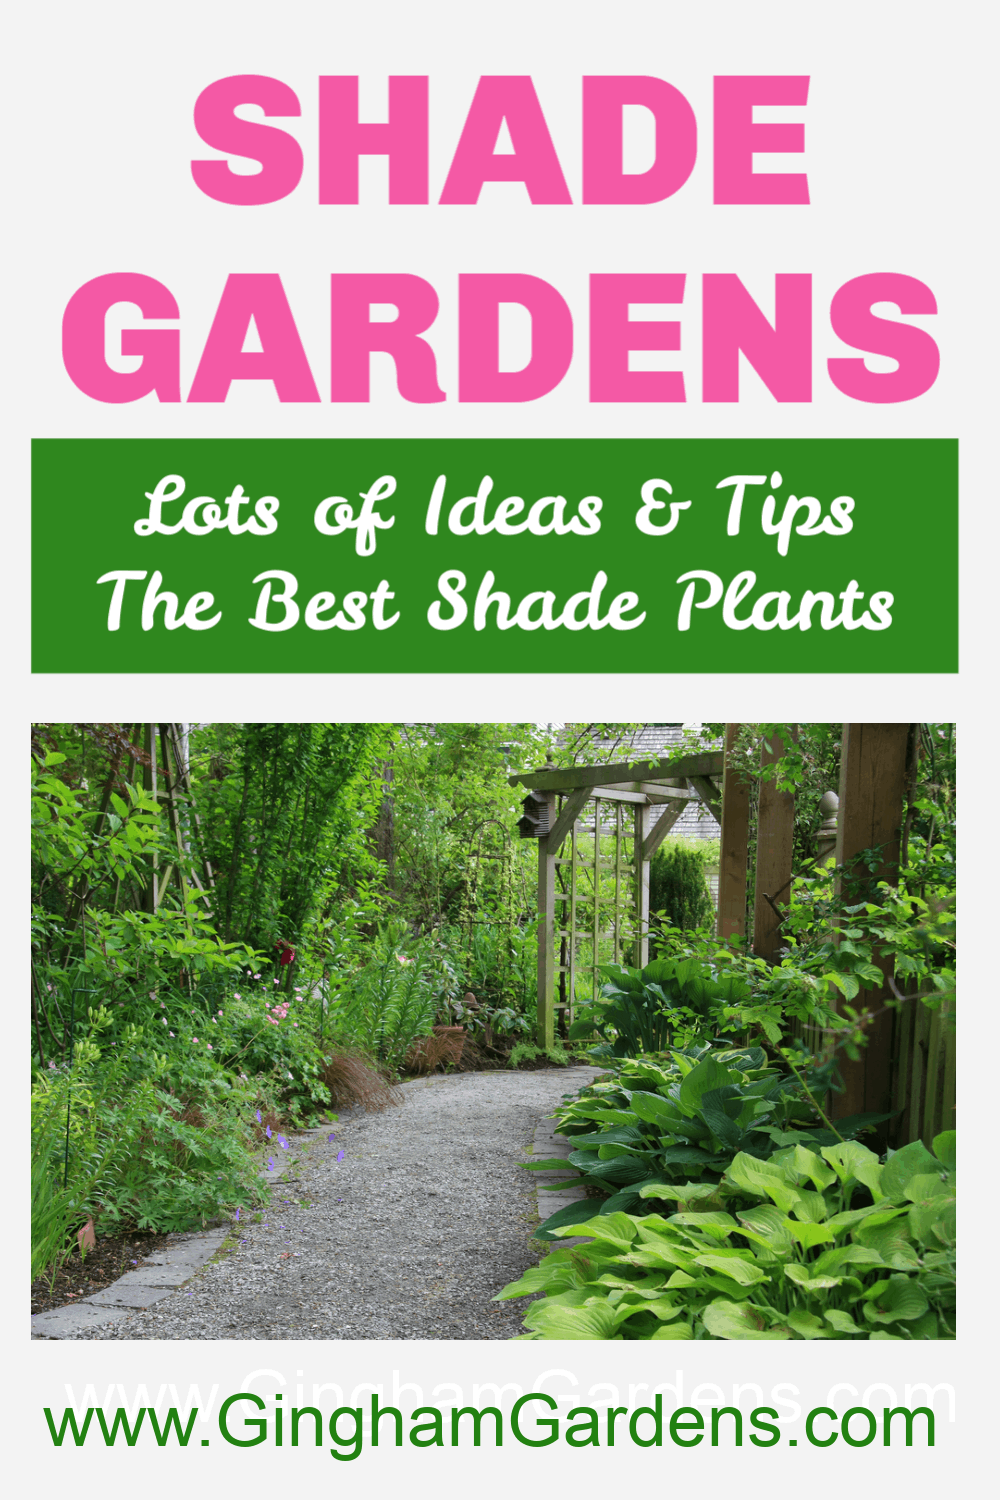 Image of a Shade Garden with text overlay Shade Gardens